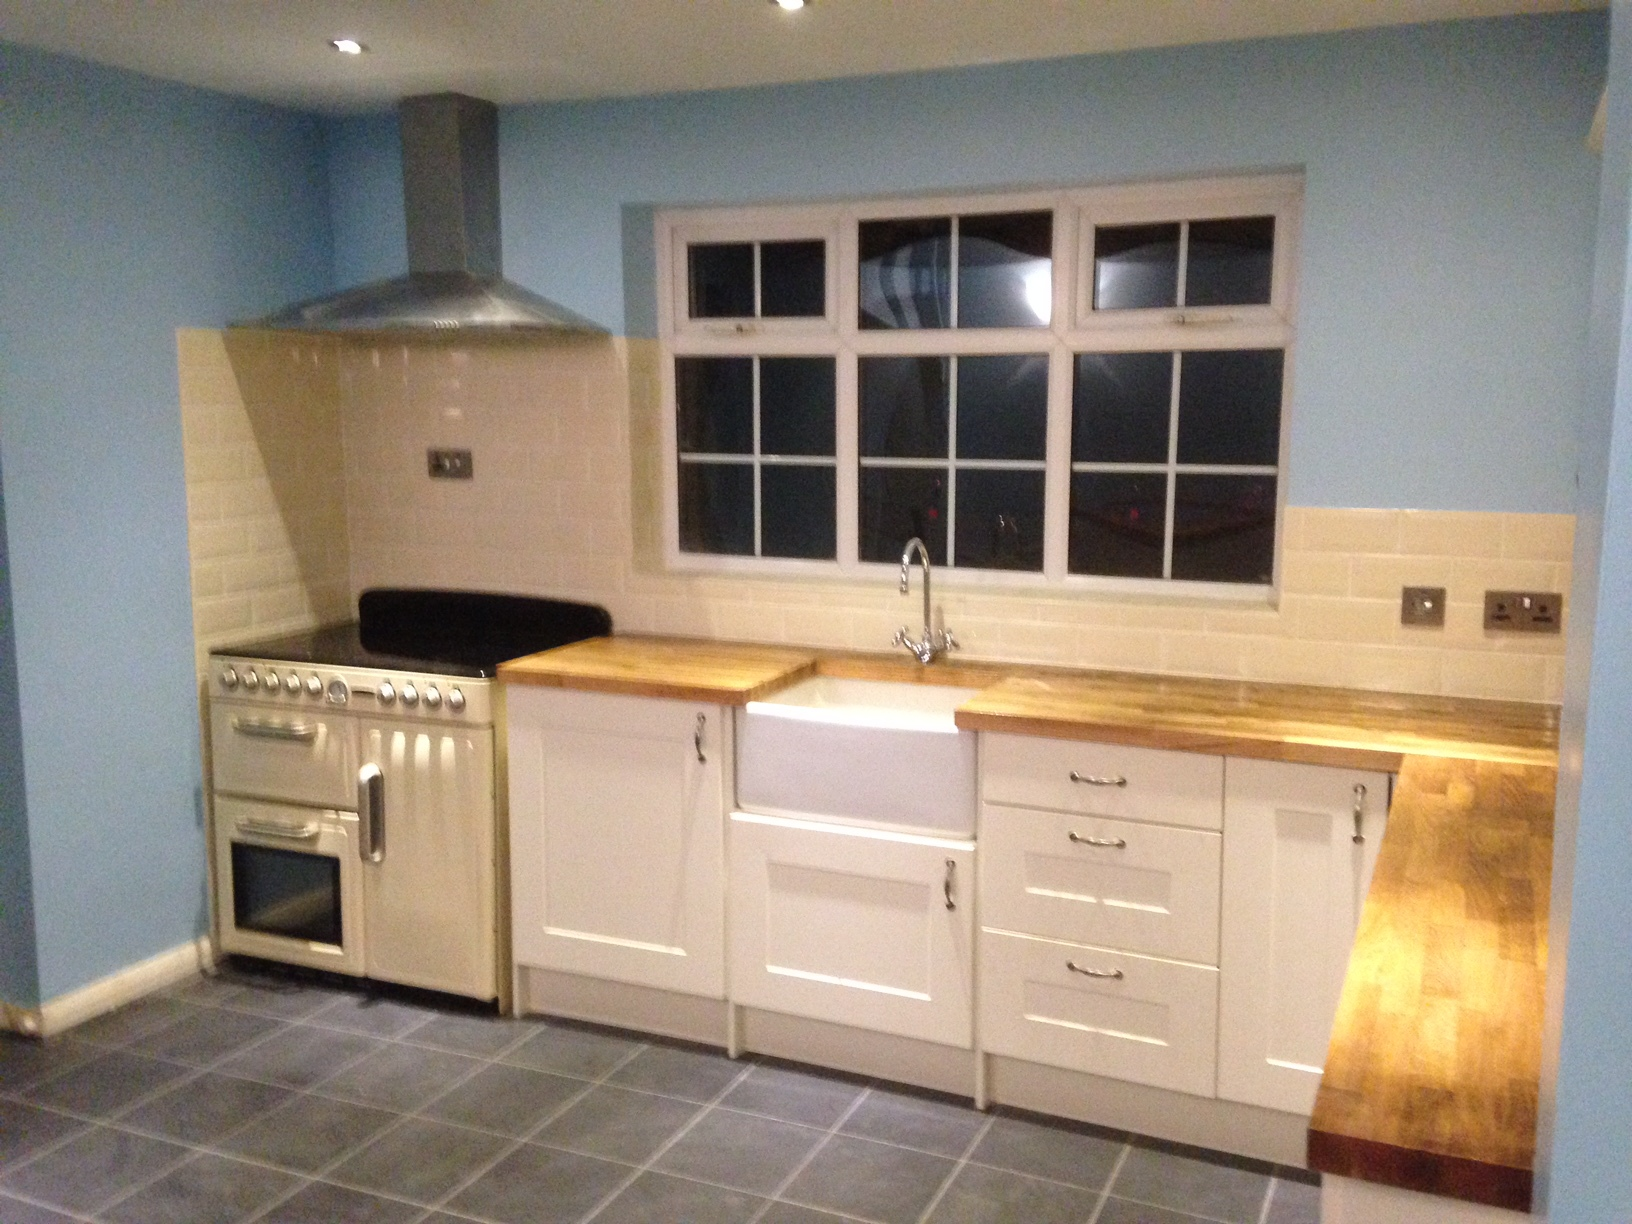 Kitchen fitted